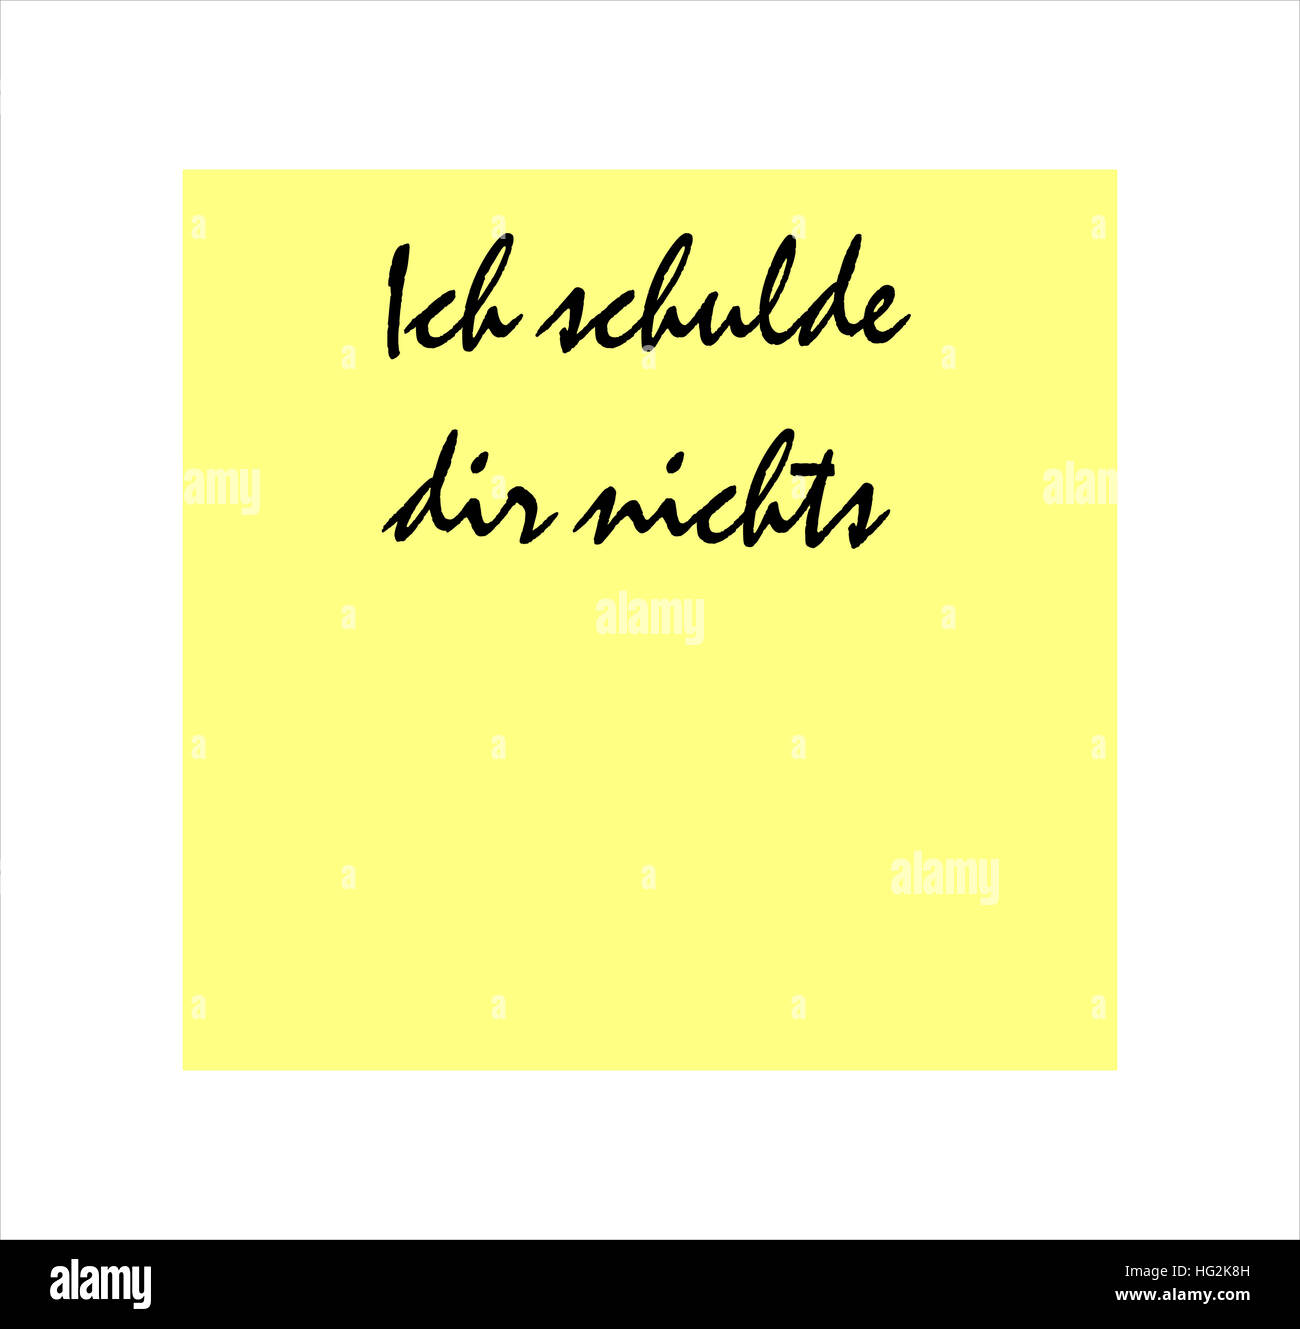 I owe you nothing message in German on yellow post it sticker - Stock Image